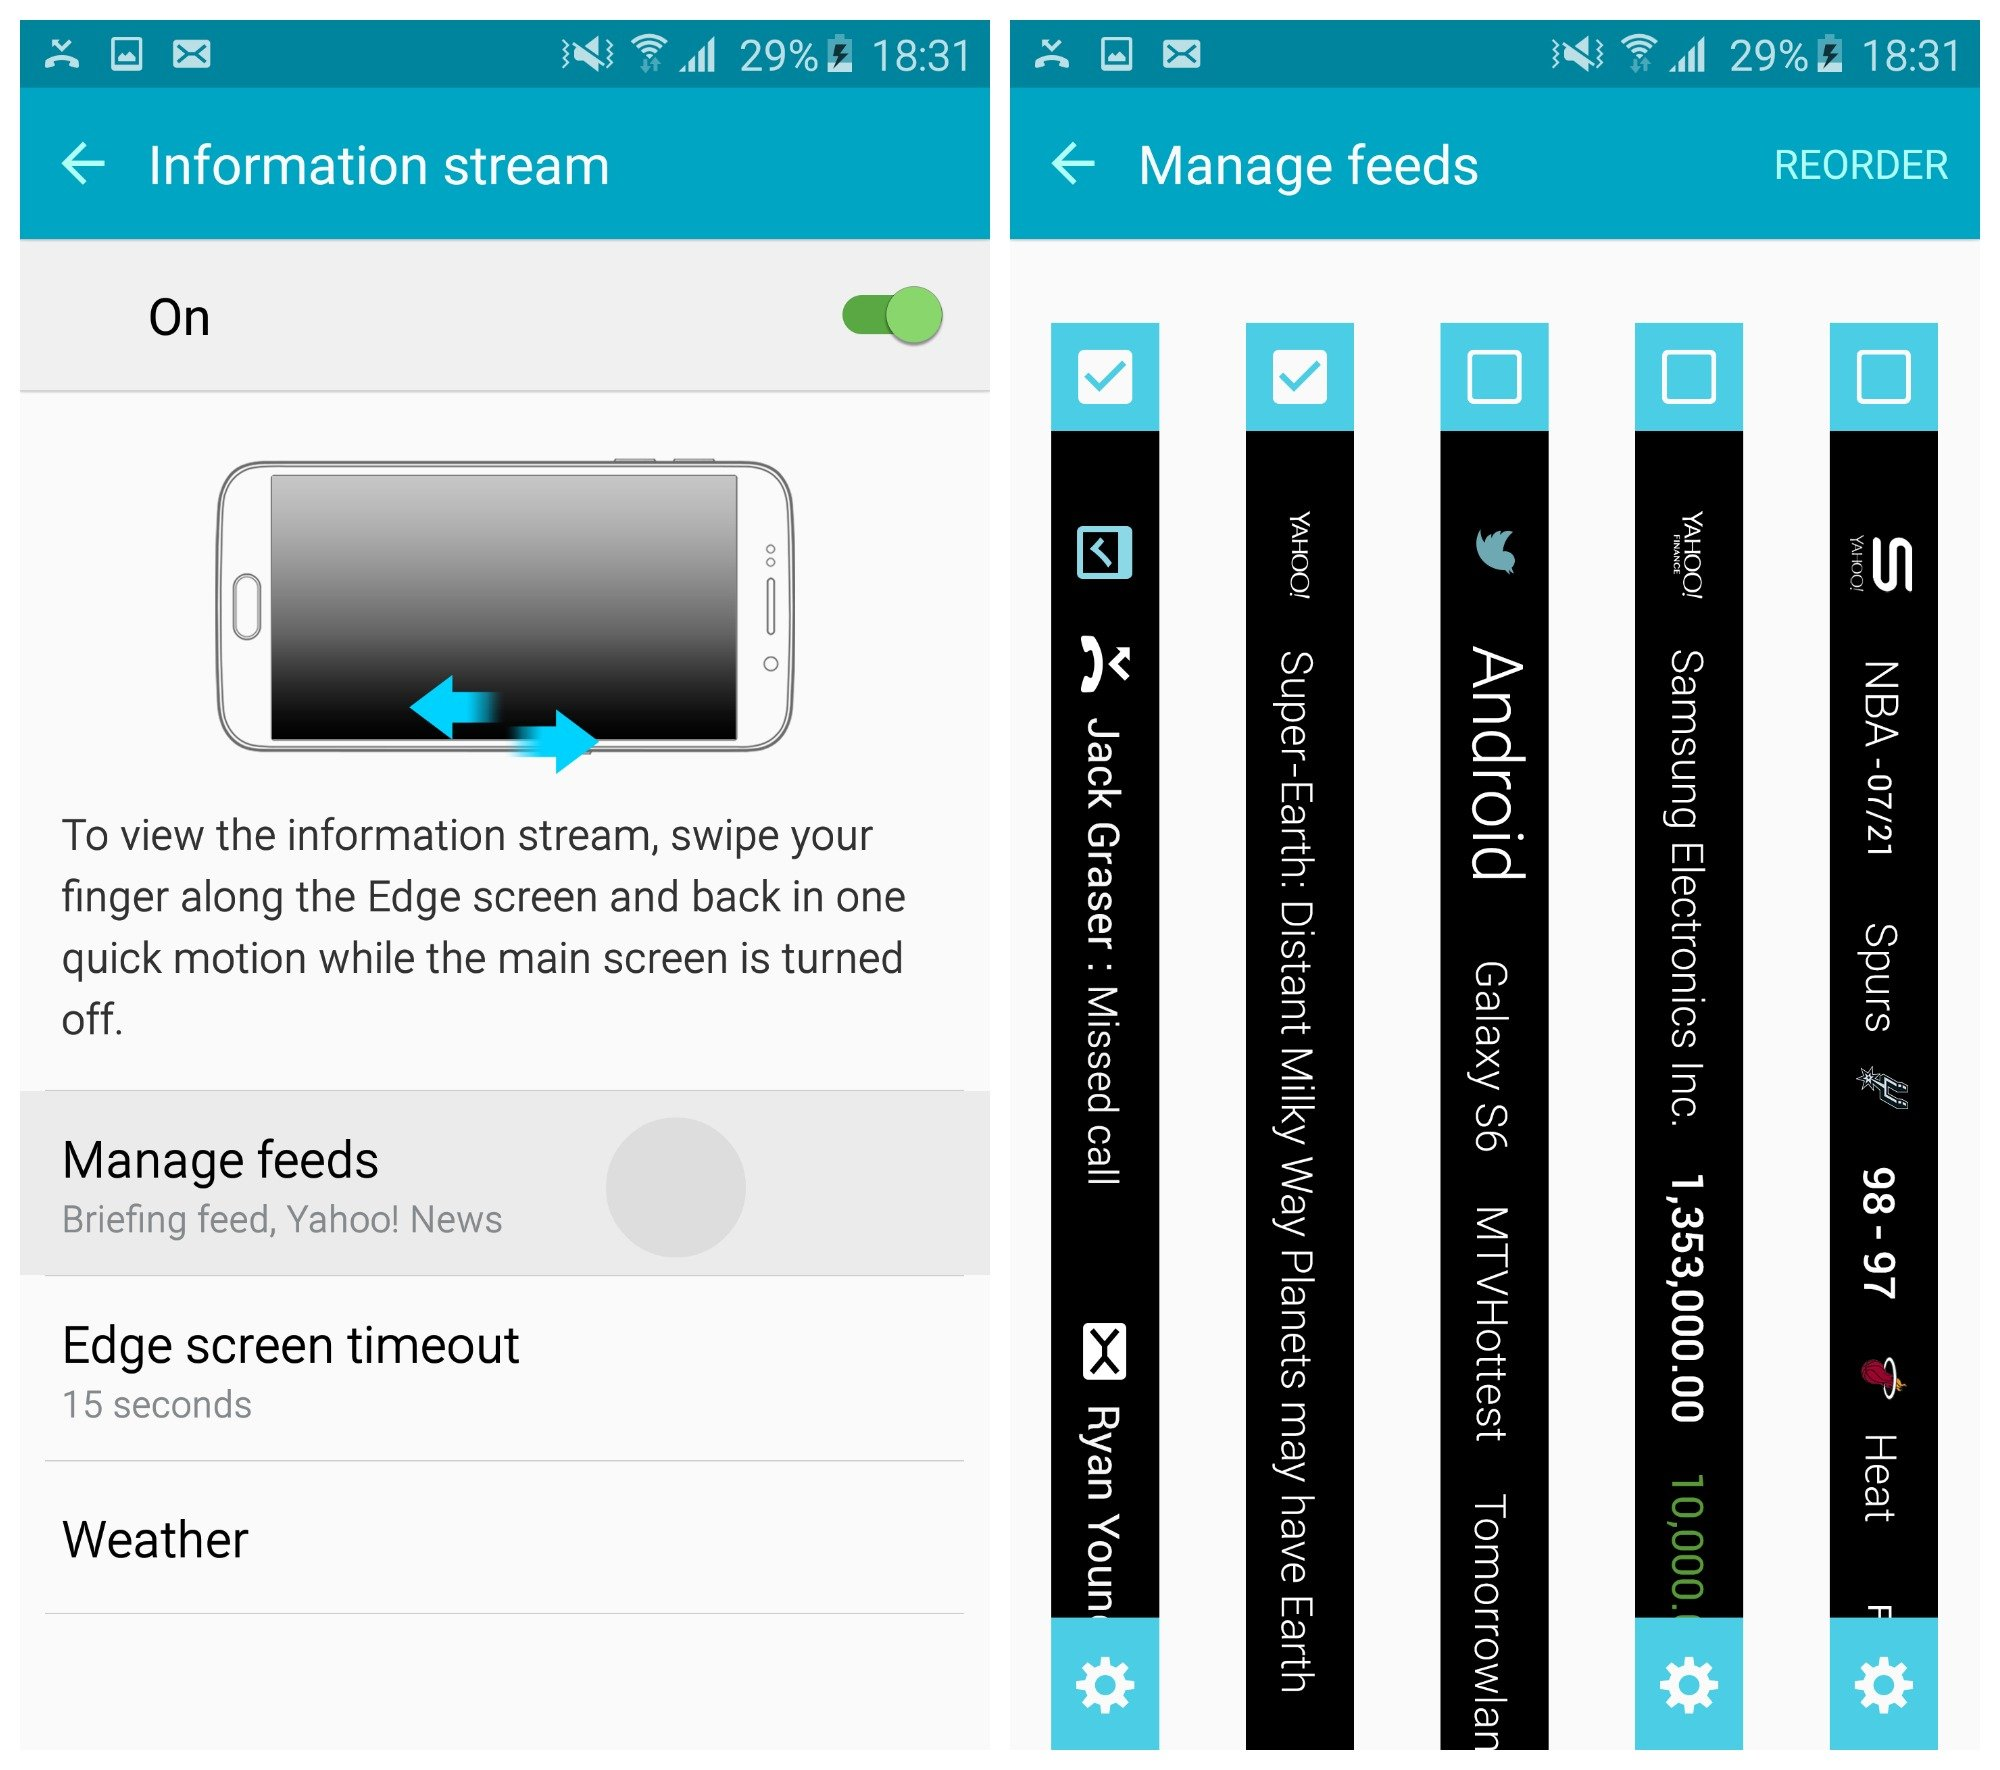 Galaxy S6 Edge Tips And Tricks 12 Ways To Master The Edge